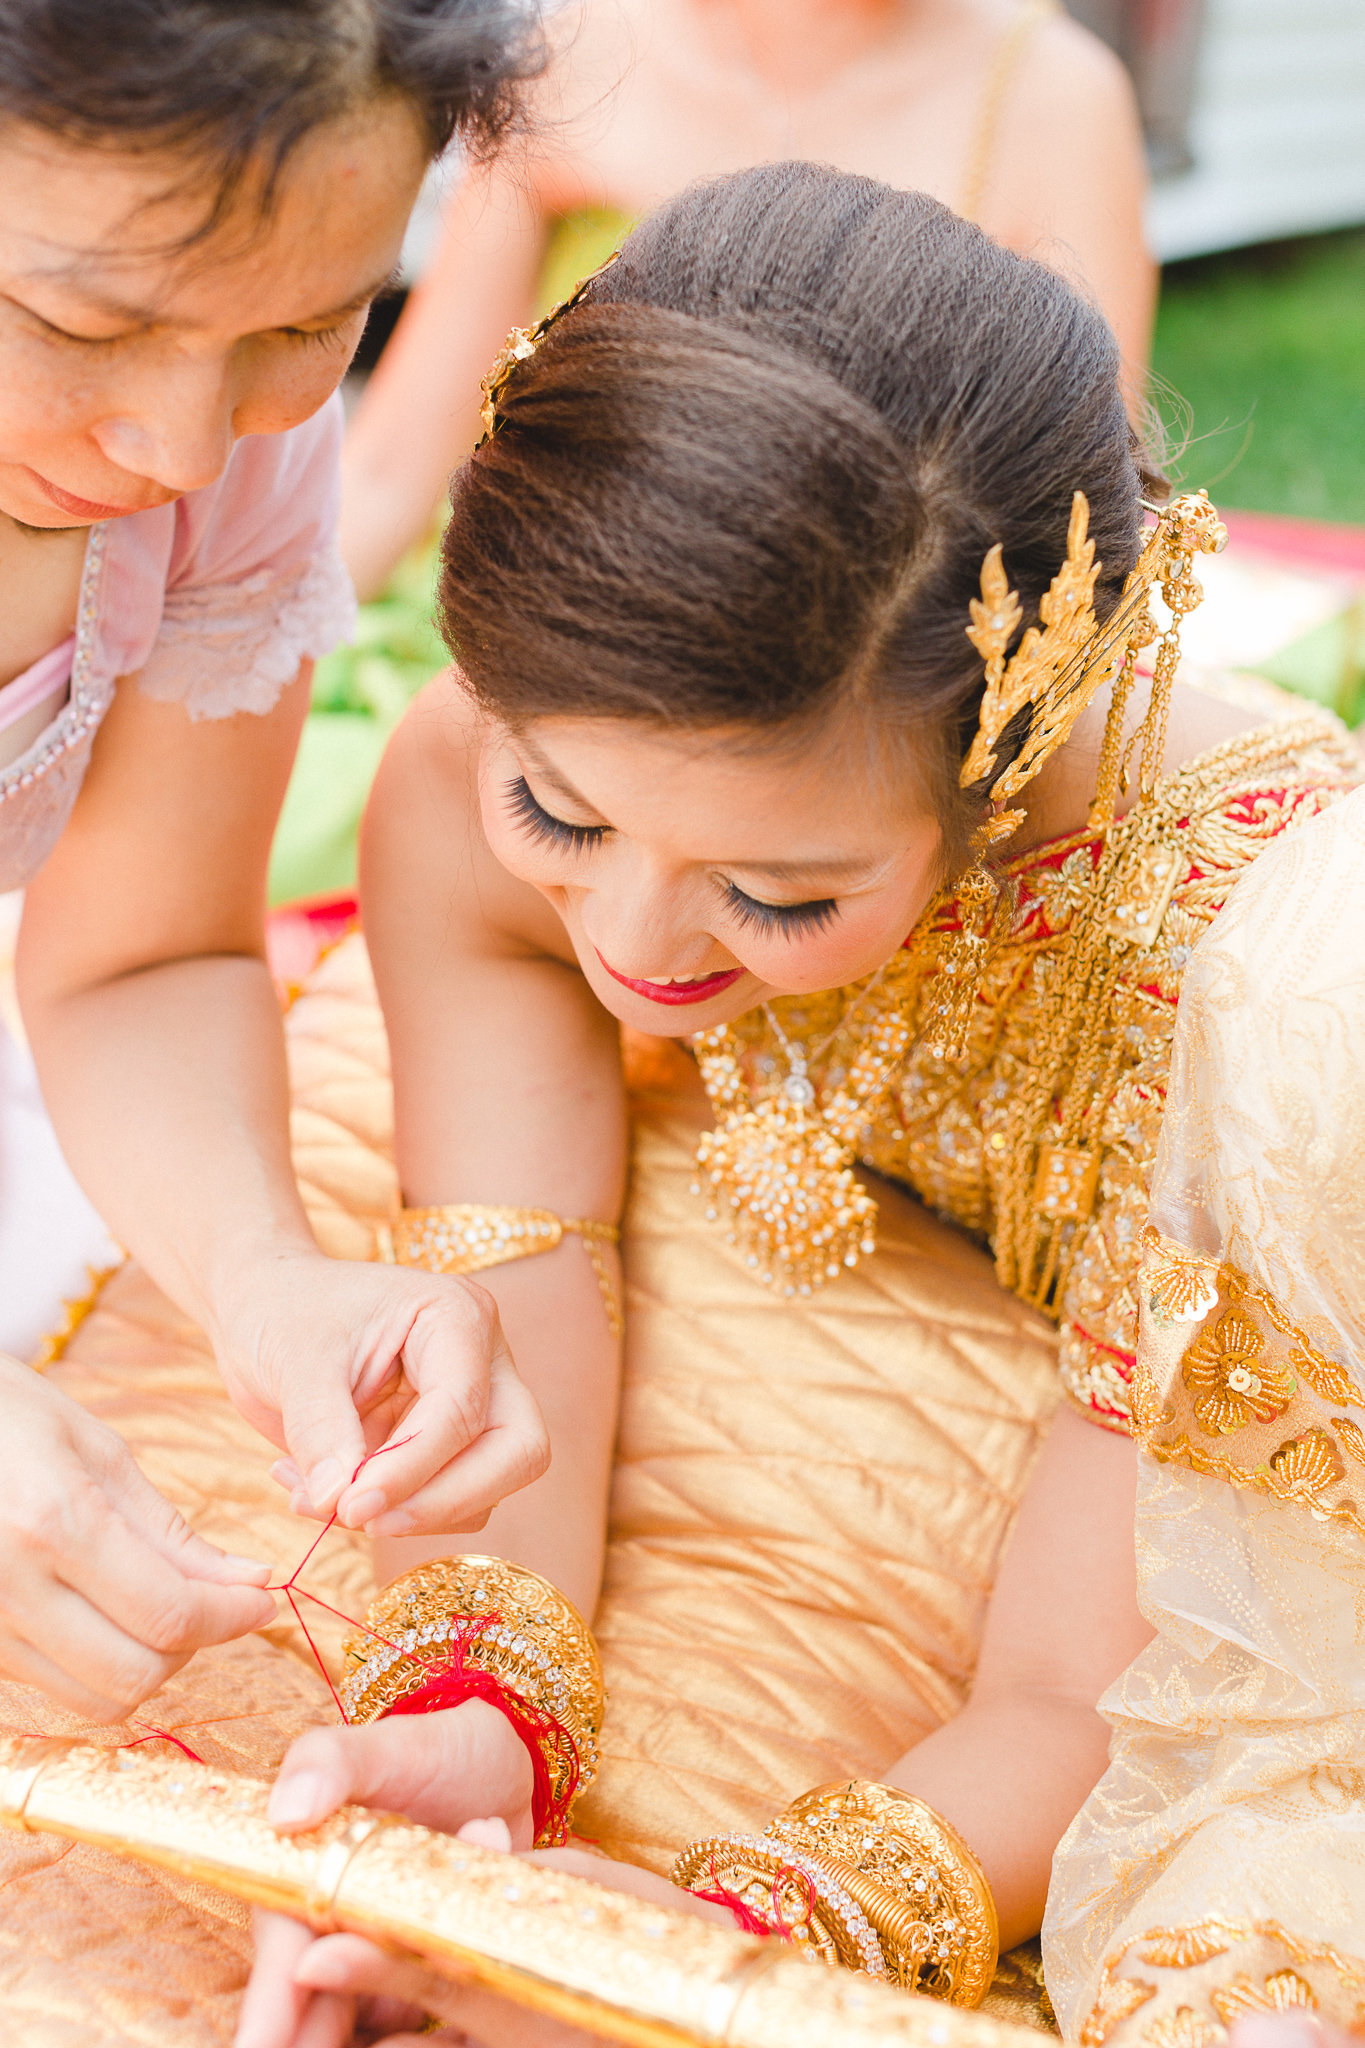 photographe-montreal-mariage-culturel-traditionnel-cambodgien-lisa-renault-photographie-traditional-cultural-cambodian-wedding-63